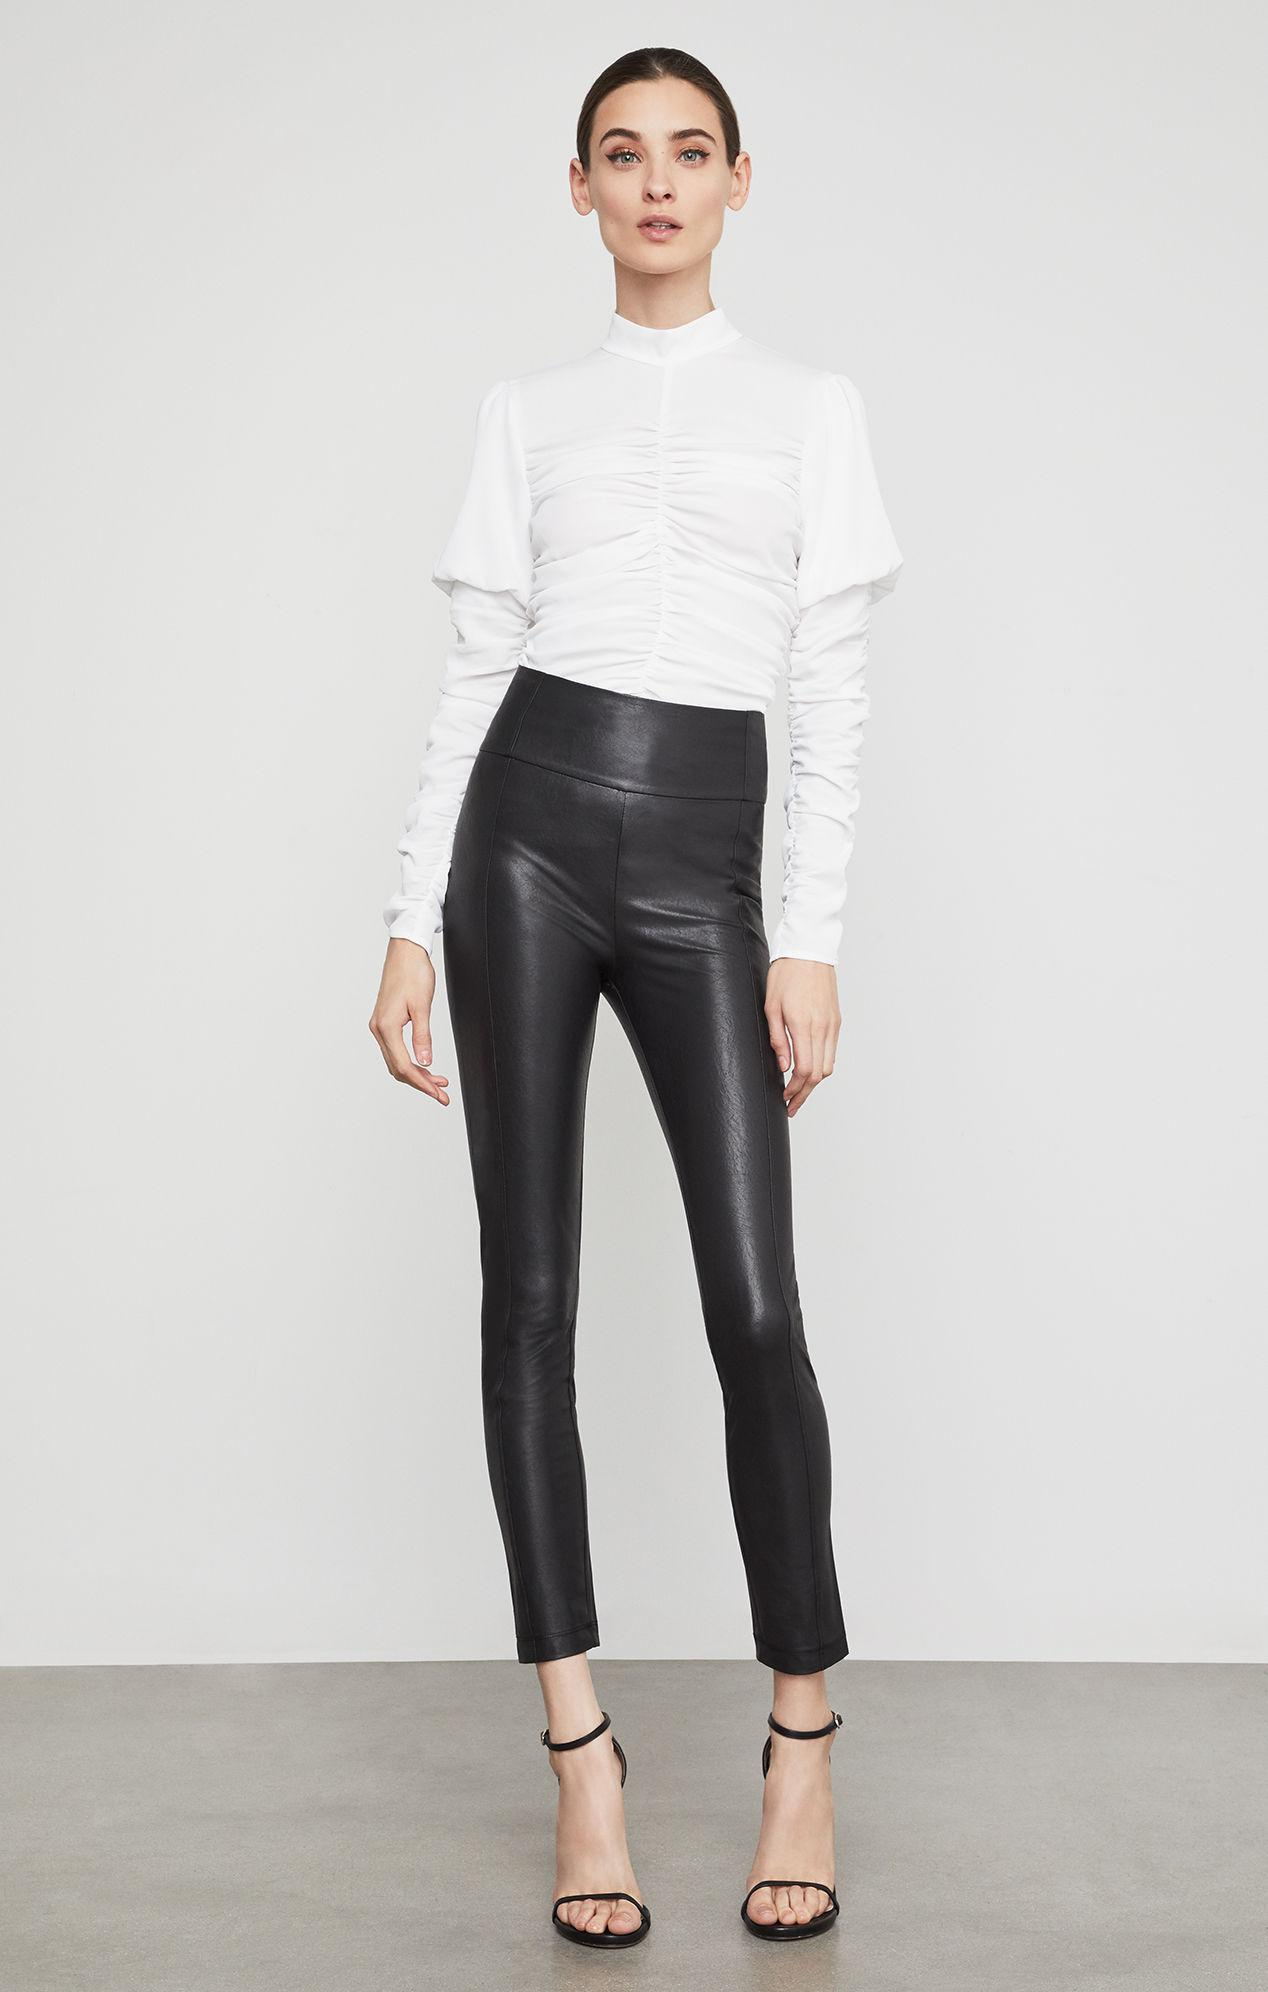 a70419e9ea15e Gallery. Previously sold at: BCBGMAXAZRIA · Women's Faux Leather Pants  Women's Leather Leggings